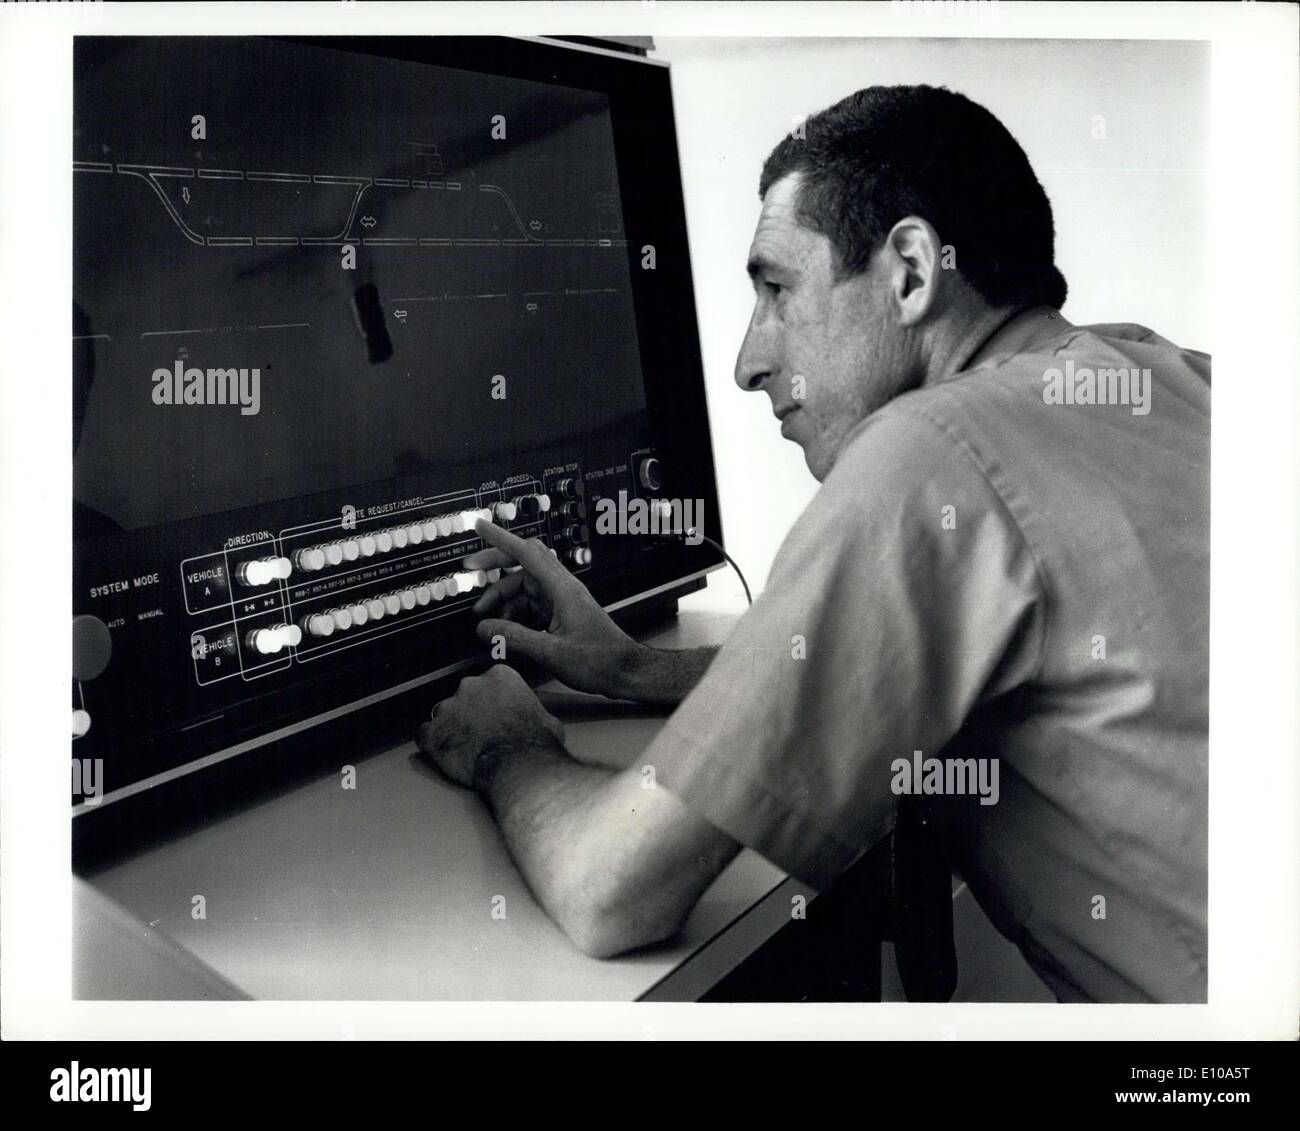 May 26, 1972 - Computerized People Movers: Wayne Bales Programs the computerized''people mover'' system built by the Bendix Corporation for Transpo 72 May-27 - June 4 at Dulles International Airport. The System's vehicle are routed to their destinations by the computer, which decided the fastest, safest route. Passengers summon a vehicle and direct it to their destination by pressing buttons in much the same way an elevator is operated. - Stock Image